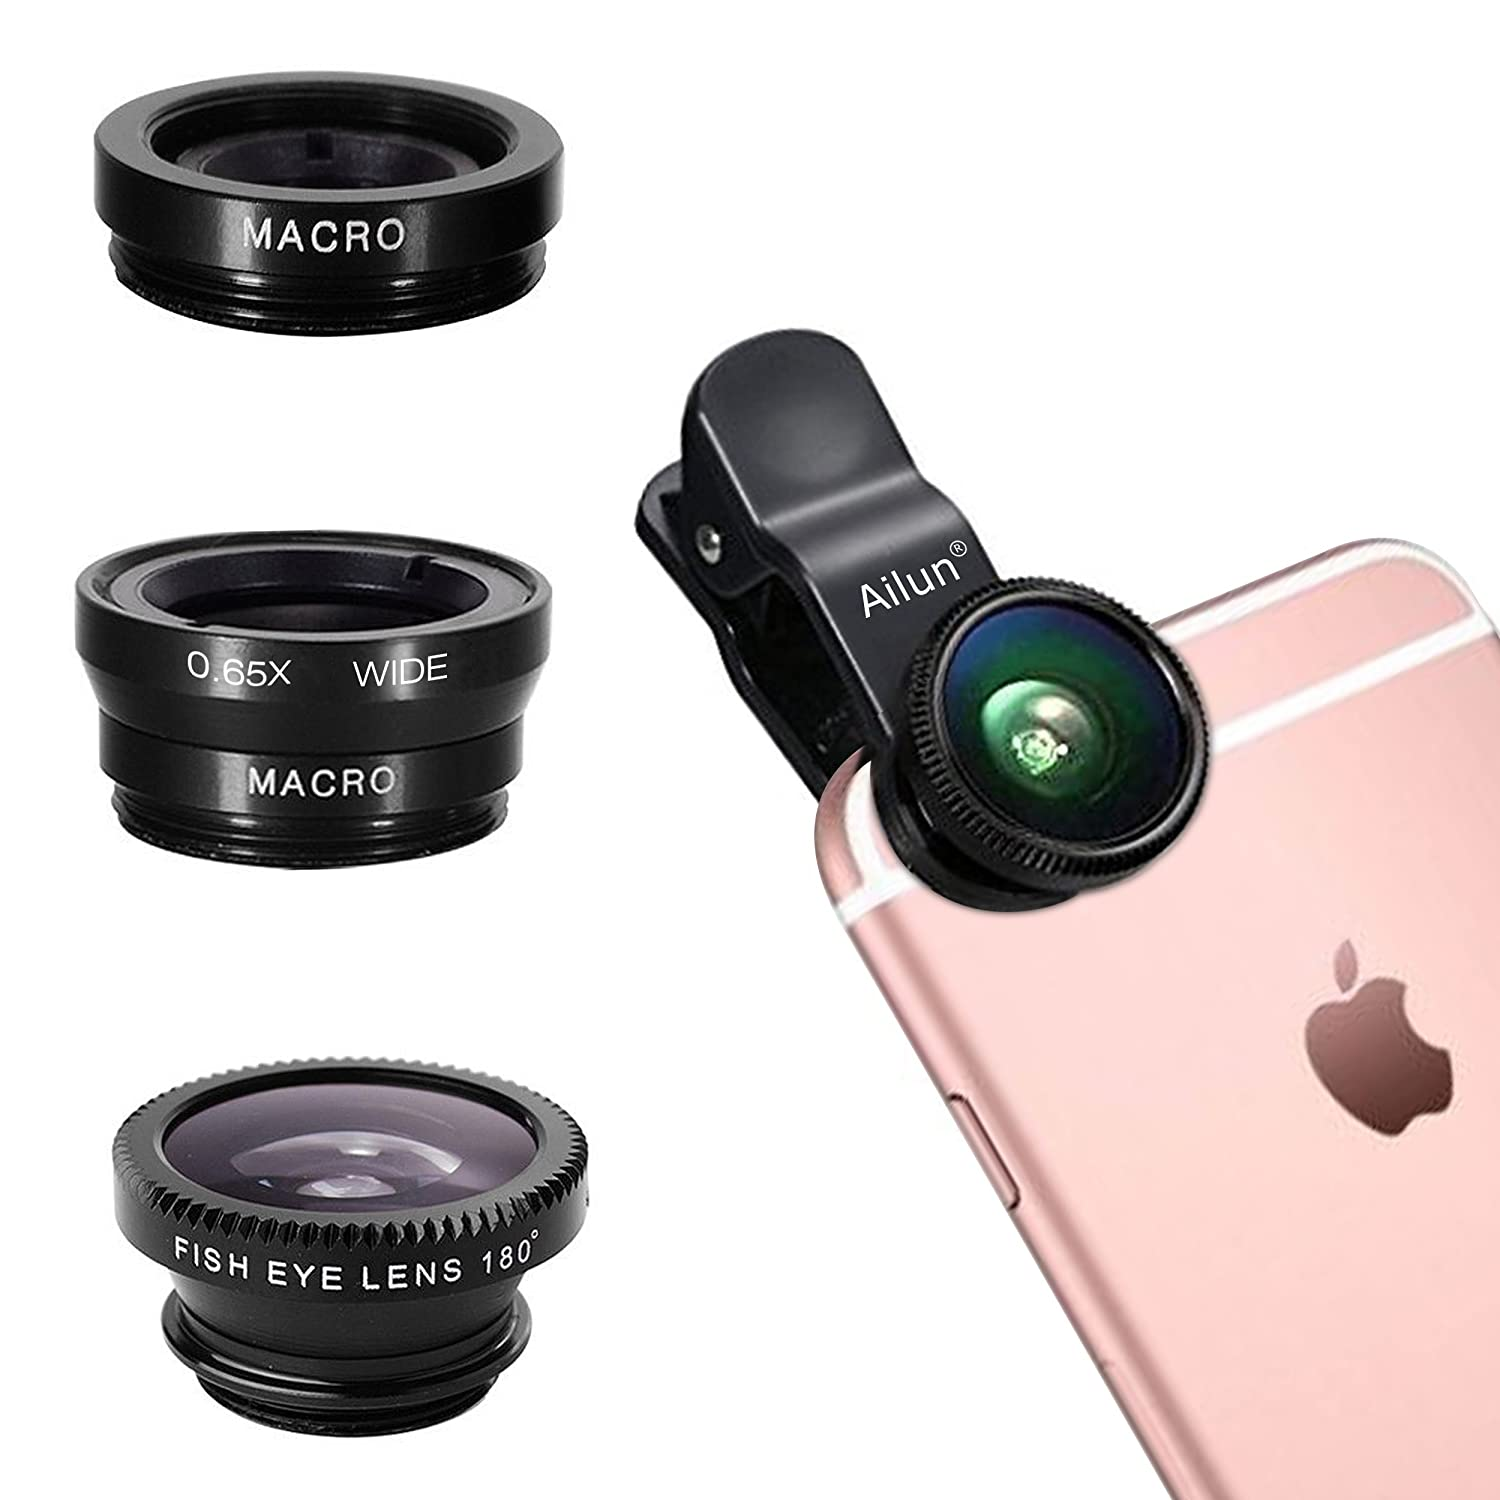 Black iPhone Lens,by Ailun,3 in 1 Clip On 180 Degree Fish Eye Lens+0.65X Wide Angle+10X Macro Lens,Universal HD Camera Lens Kit for iPhone 7//6s//6s Plus//6//SE//5//5s,Samsung,BlackBerry,Mobile Phone